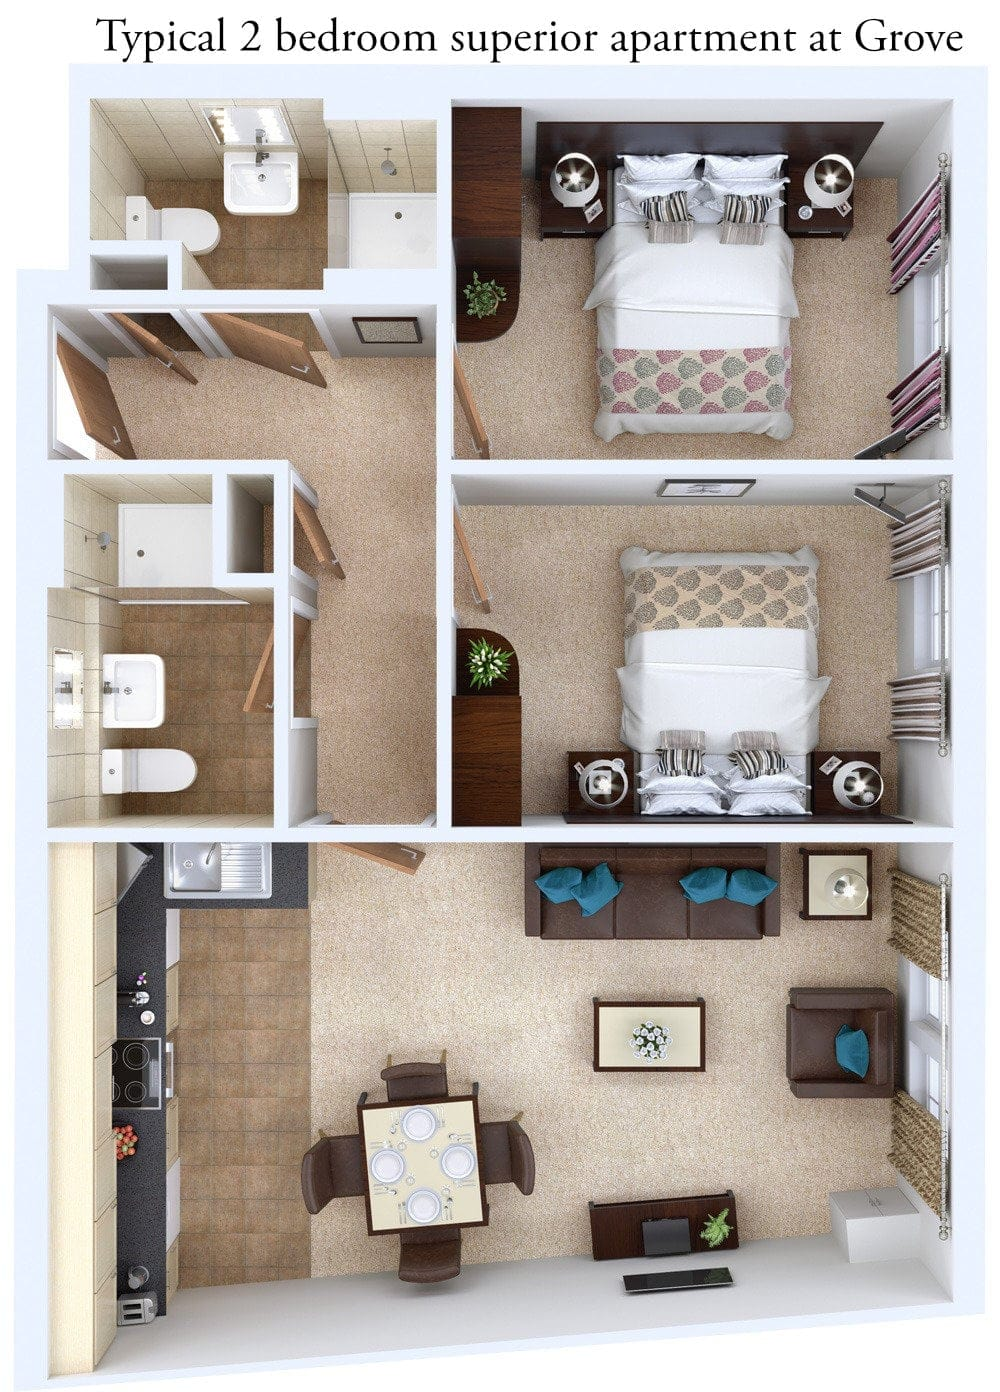 Grove-2-Bed-Homepage